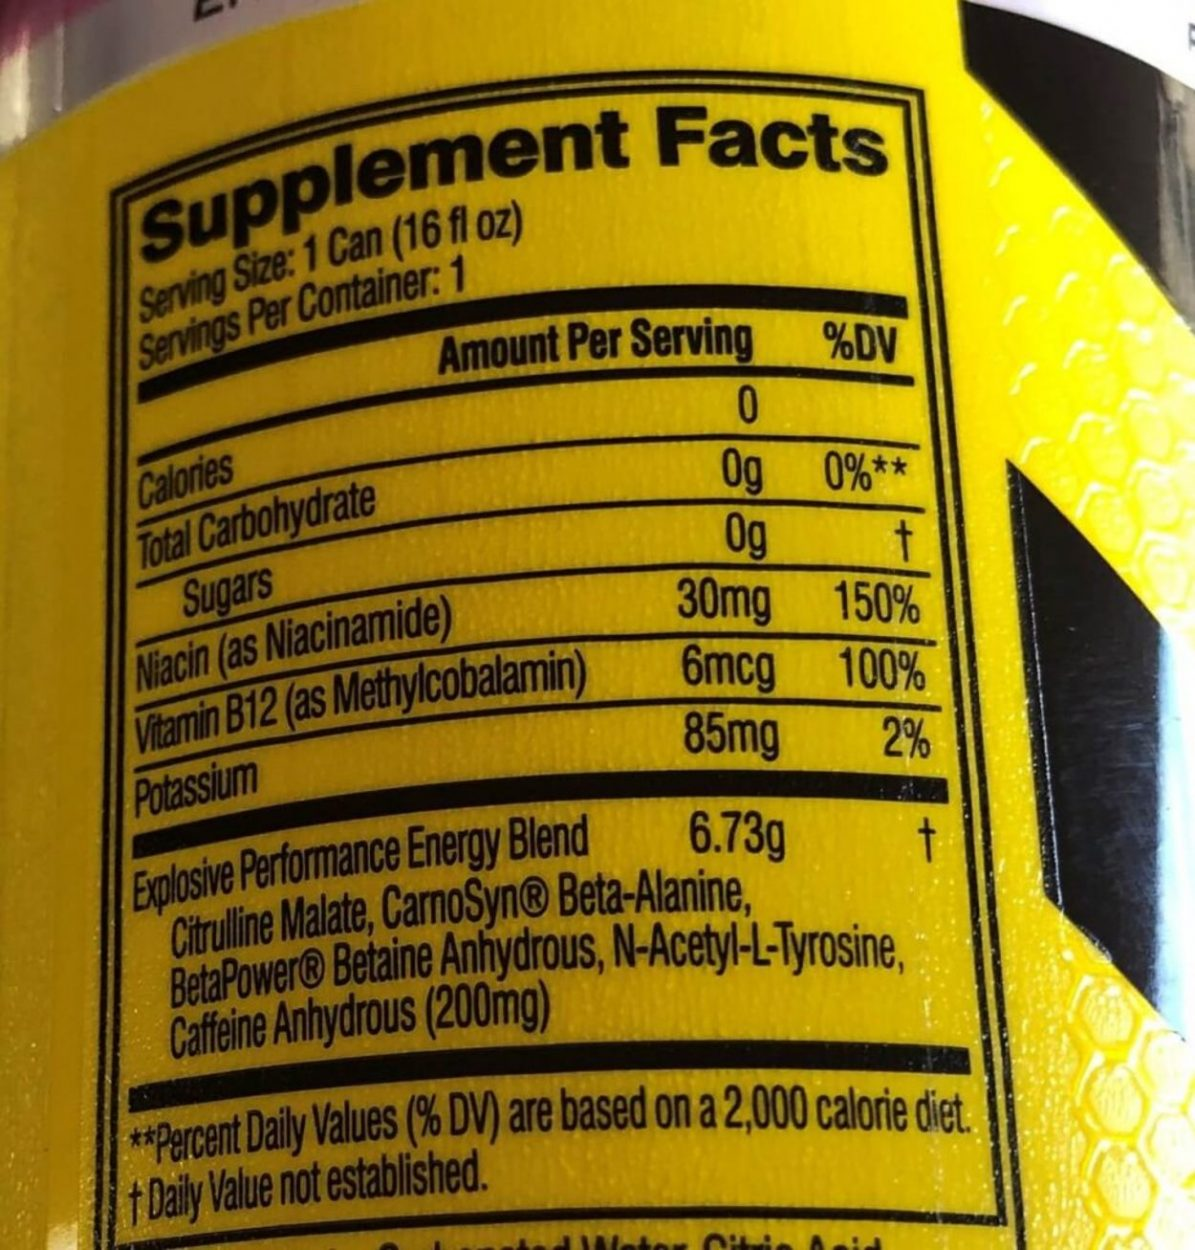 The nutrition facts of a can of C4 Energy Drink.